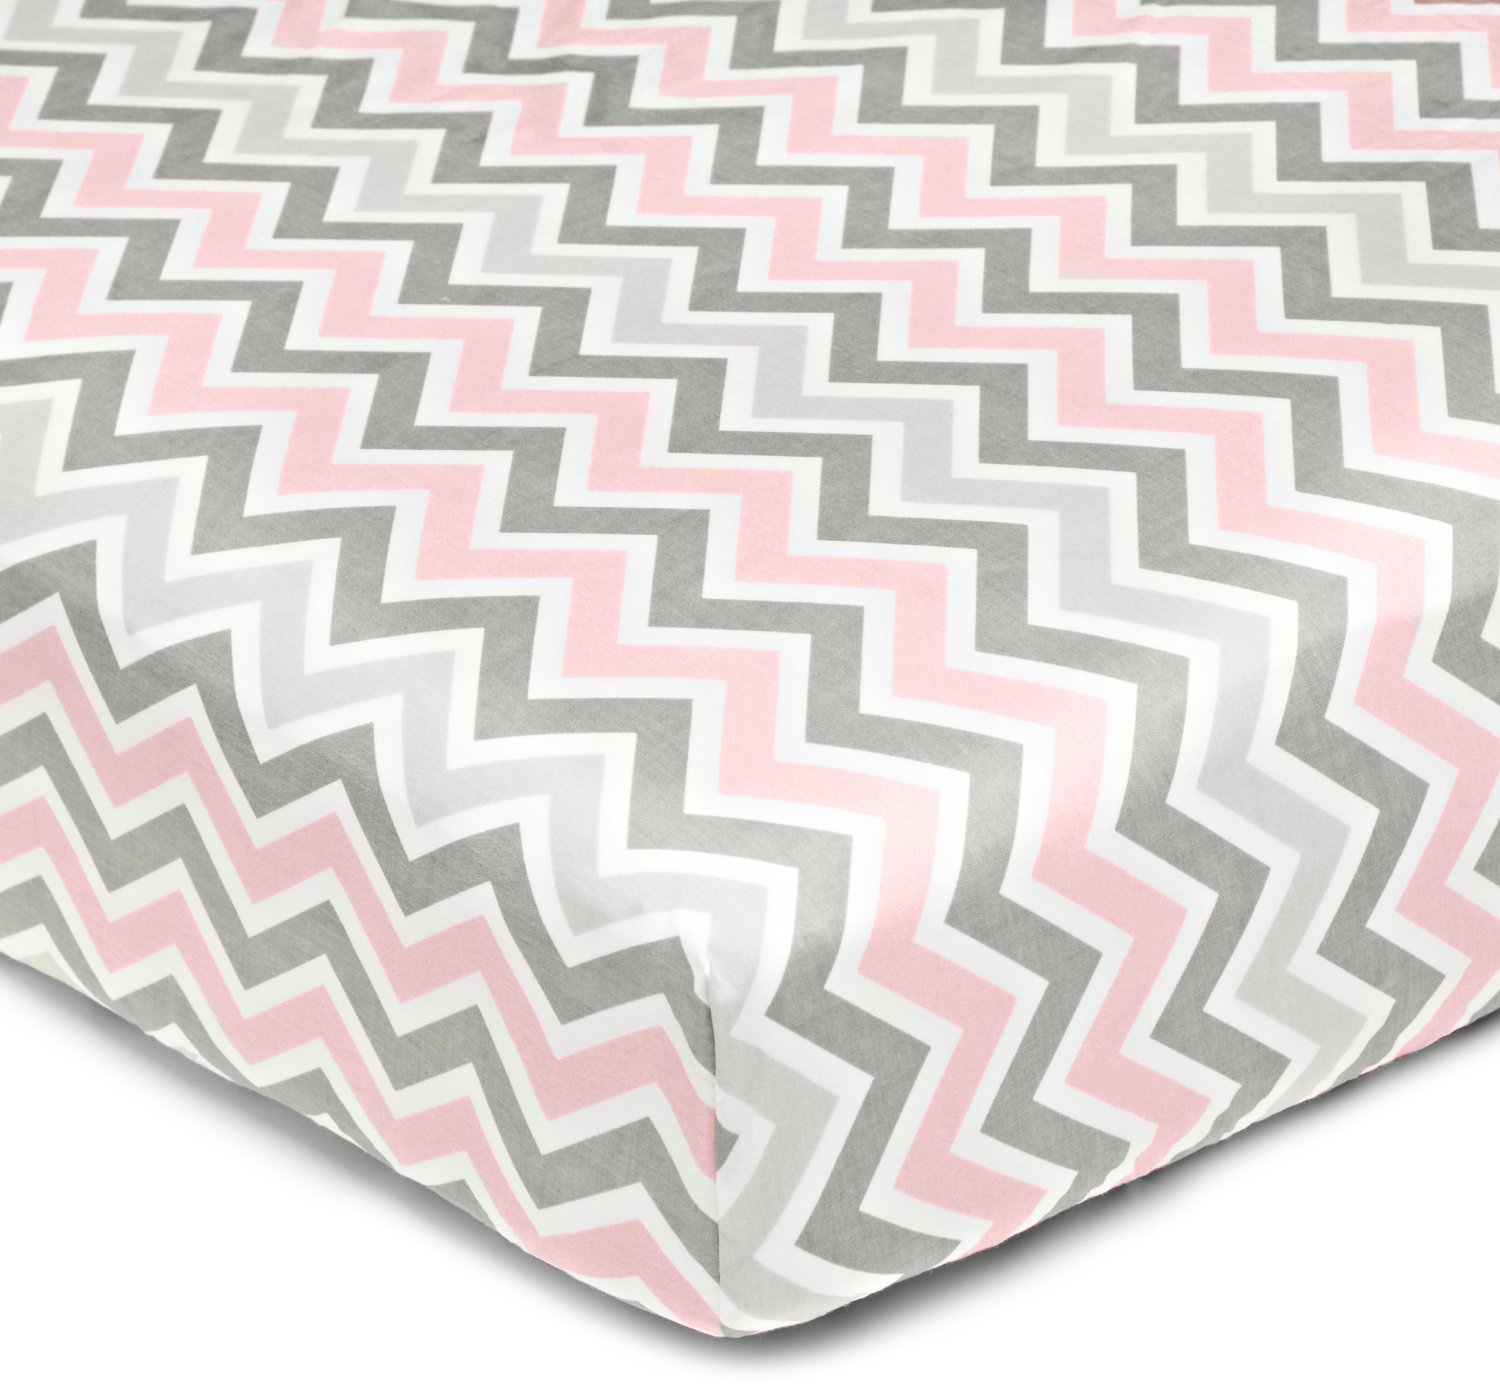 American Baby Company 1% Cotton Percale Crib Sheet - Gray Pink Zigzag